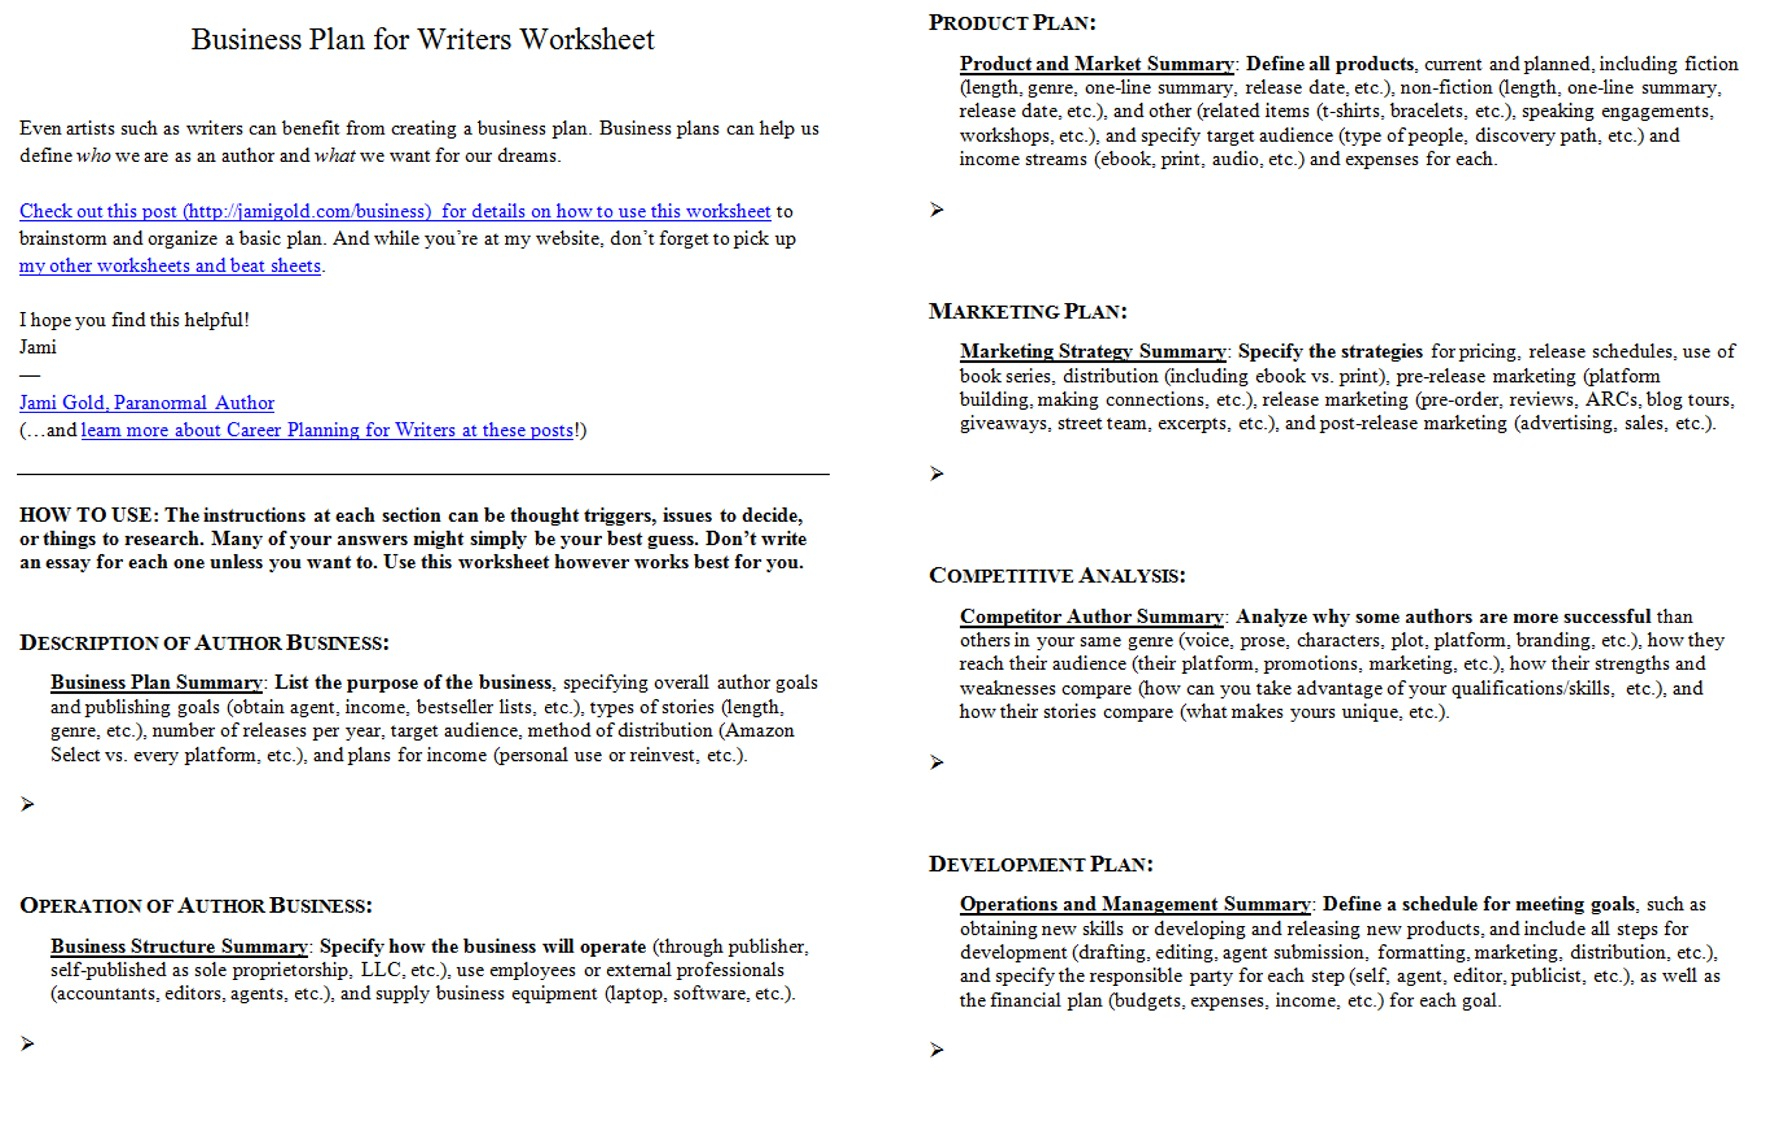 Aldiablosus  Fascinating Worksheets For Writers  Jami Gold Paranormal Author With Engaging Screen Shot Of Both Pages Of The Business Plan For Writers Worksheet With Easy On The Eye Animal Cell Worksheet Also Homeostasis Worksheet In Addition Dependent Verification Worksheet And Static Electricity Worksheet Answers As Well As Physical Science Worksheet Conservation Of Energy  Answers Additionally Ordered Pairs Worksheet From Jamigoldcom With Aldiablosus  Engaging Worksheets For Writers  Jami Gold Paranormal Author With Easy On The Eye Screen Shot Of Both Pages Of The Business Plan For Writers Worksheet And Fascinating Animal Cell Worksheet Also Homeostasis Worksheet In Addition Dependent Verification Worksheet From Jamigoldcom